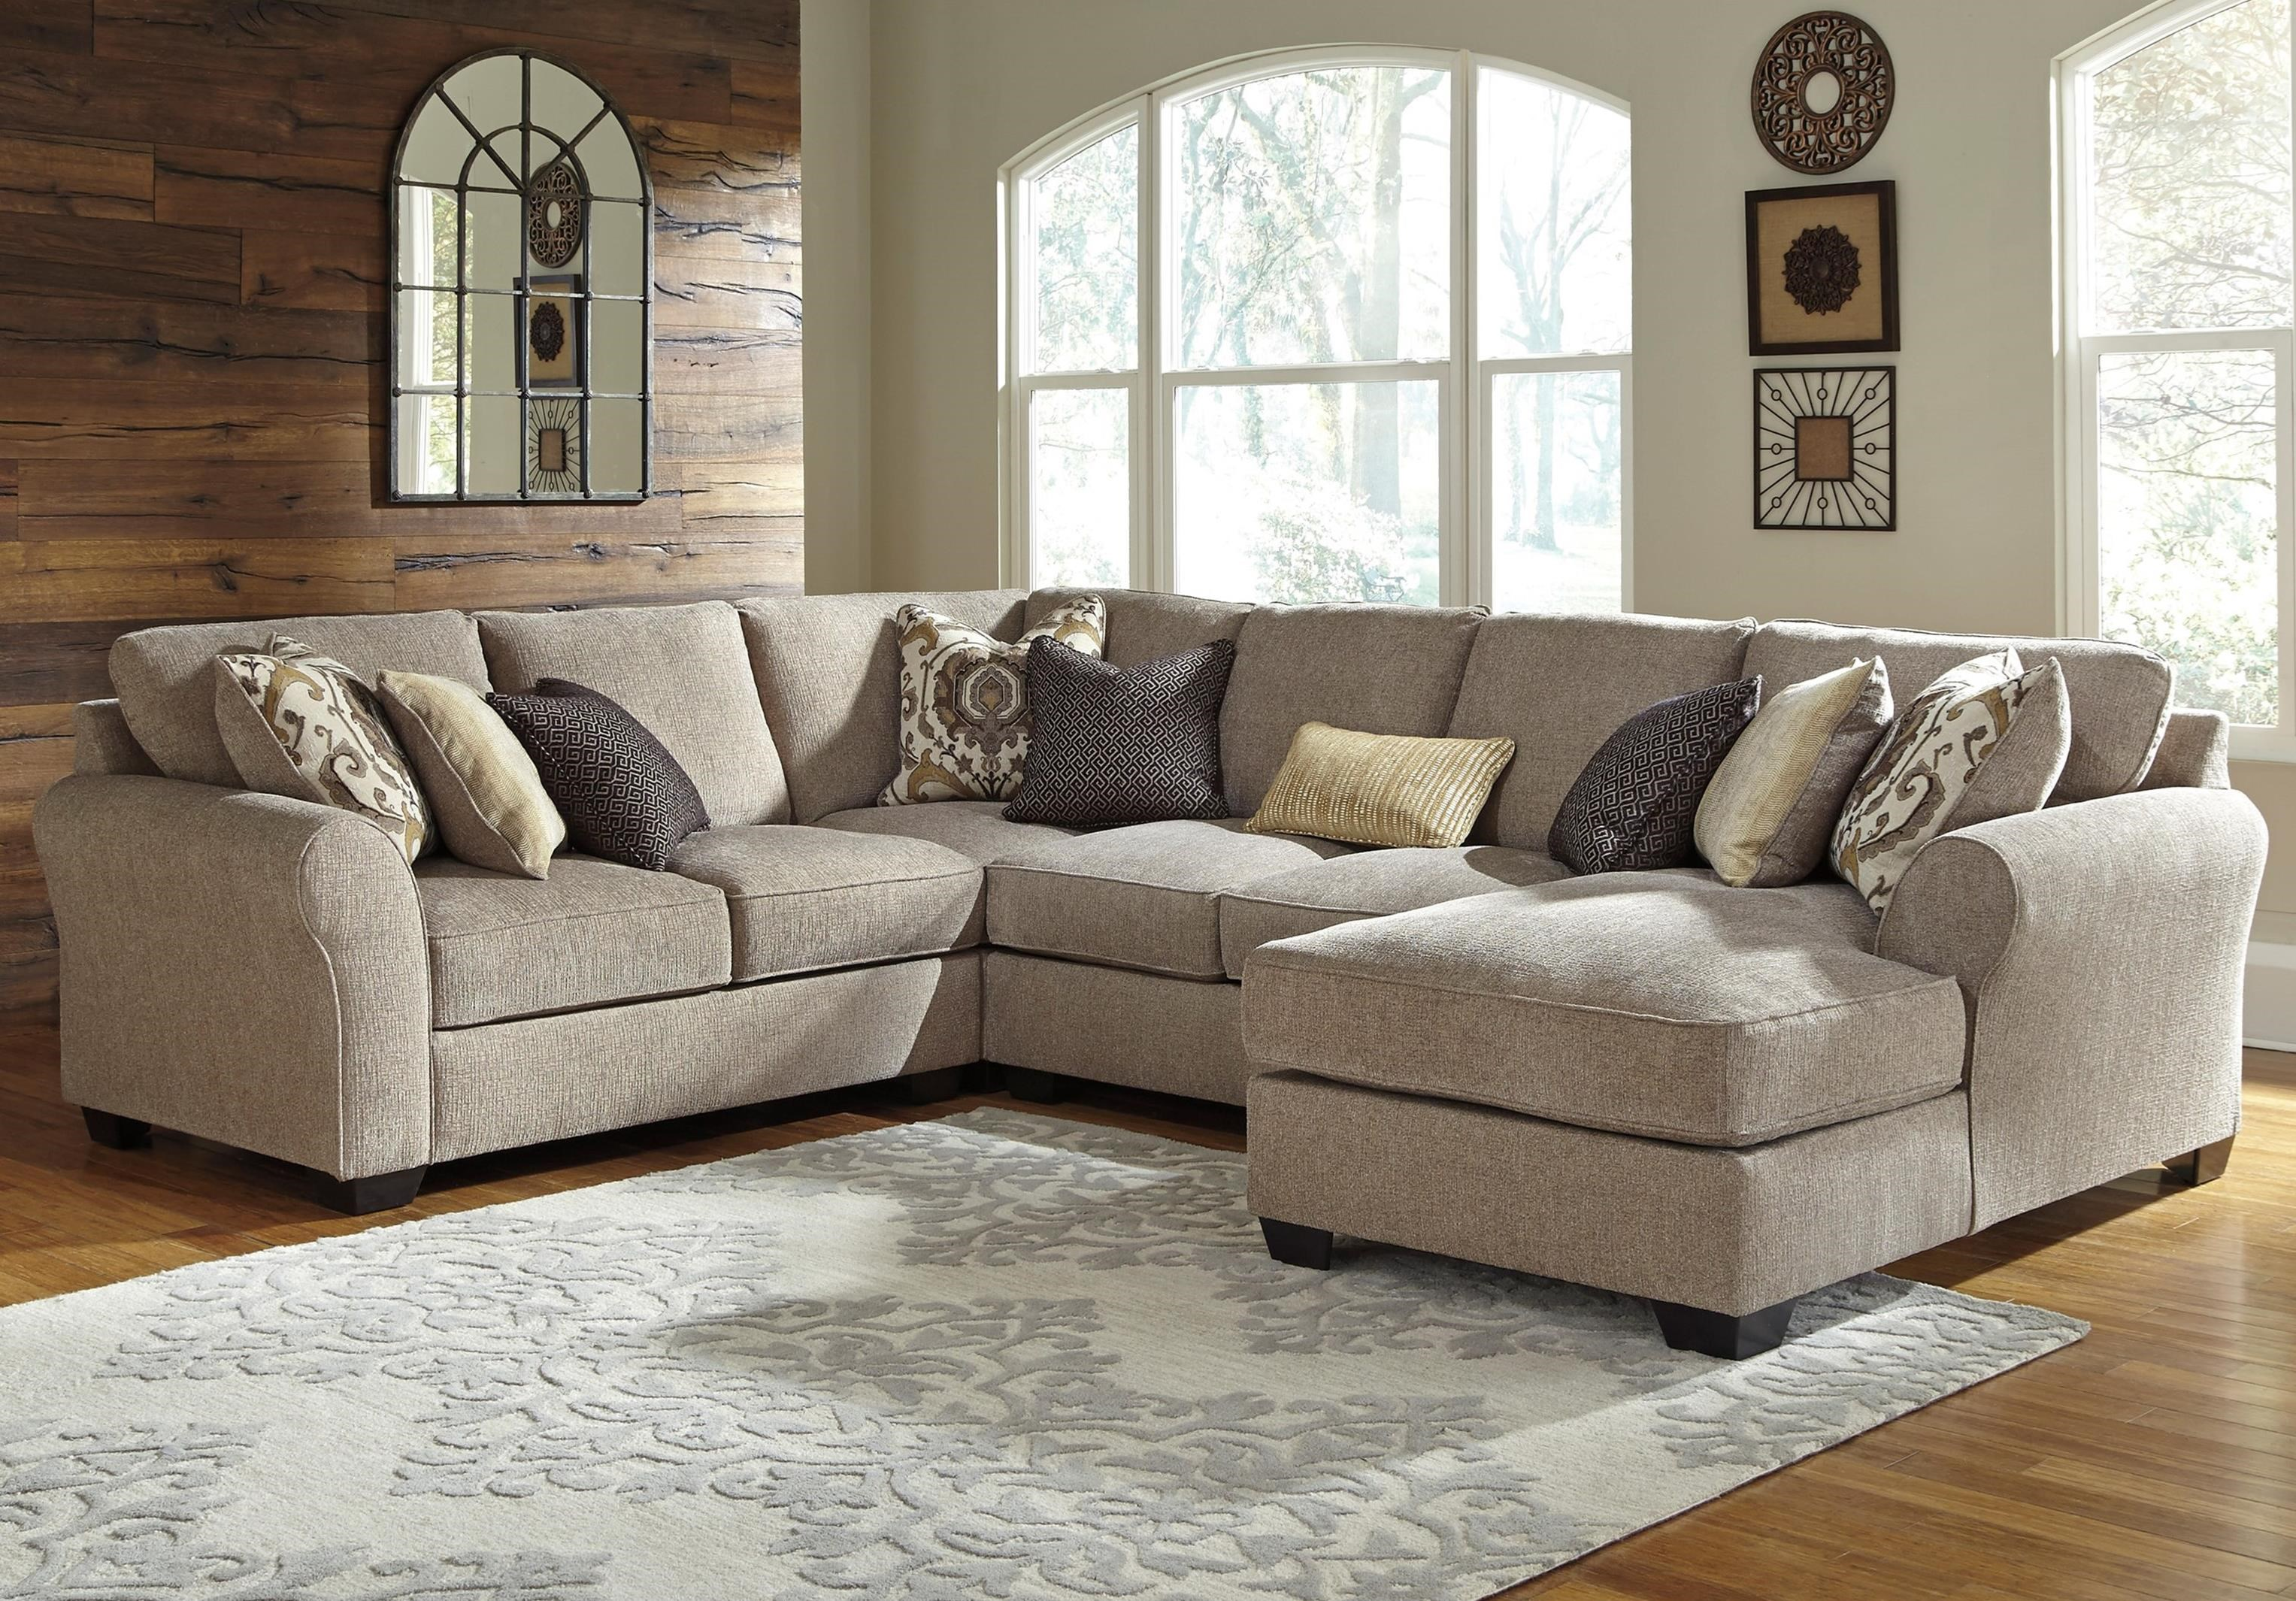 Benchcraft By Ashley Pantomine 4 Piece Sectional With Right Chaise